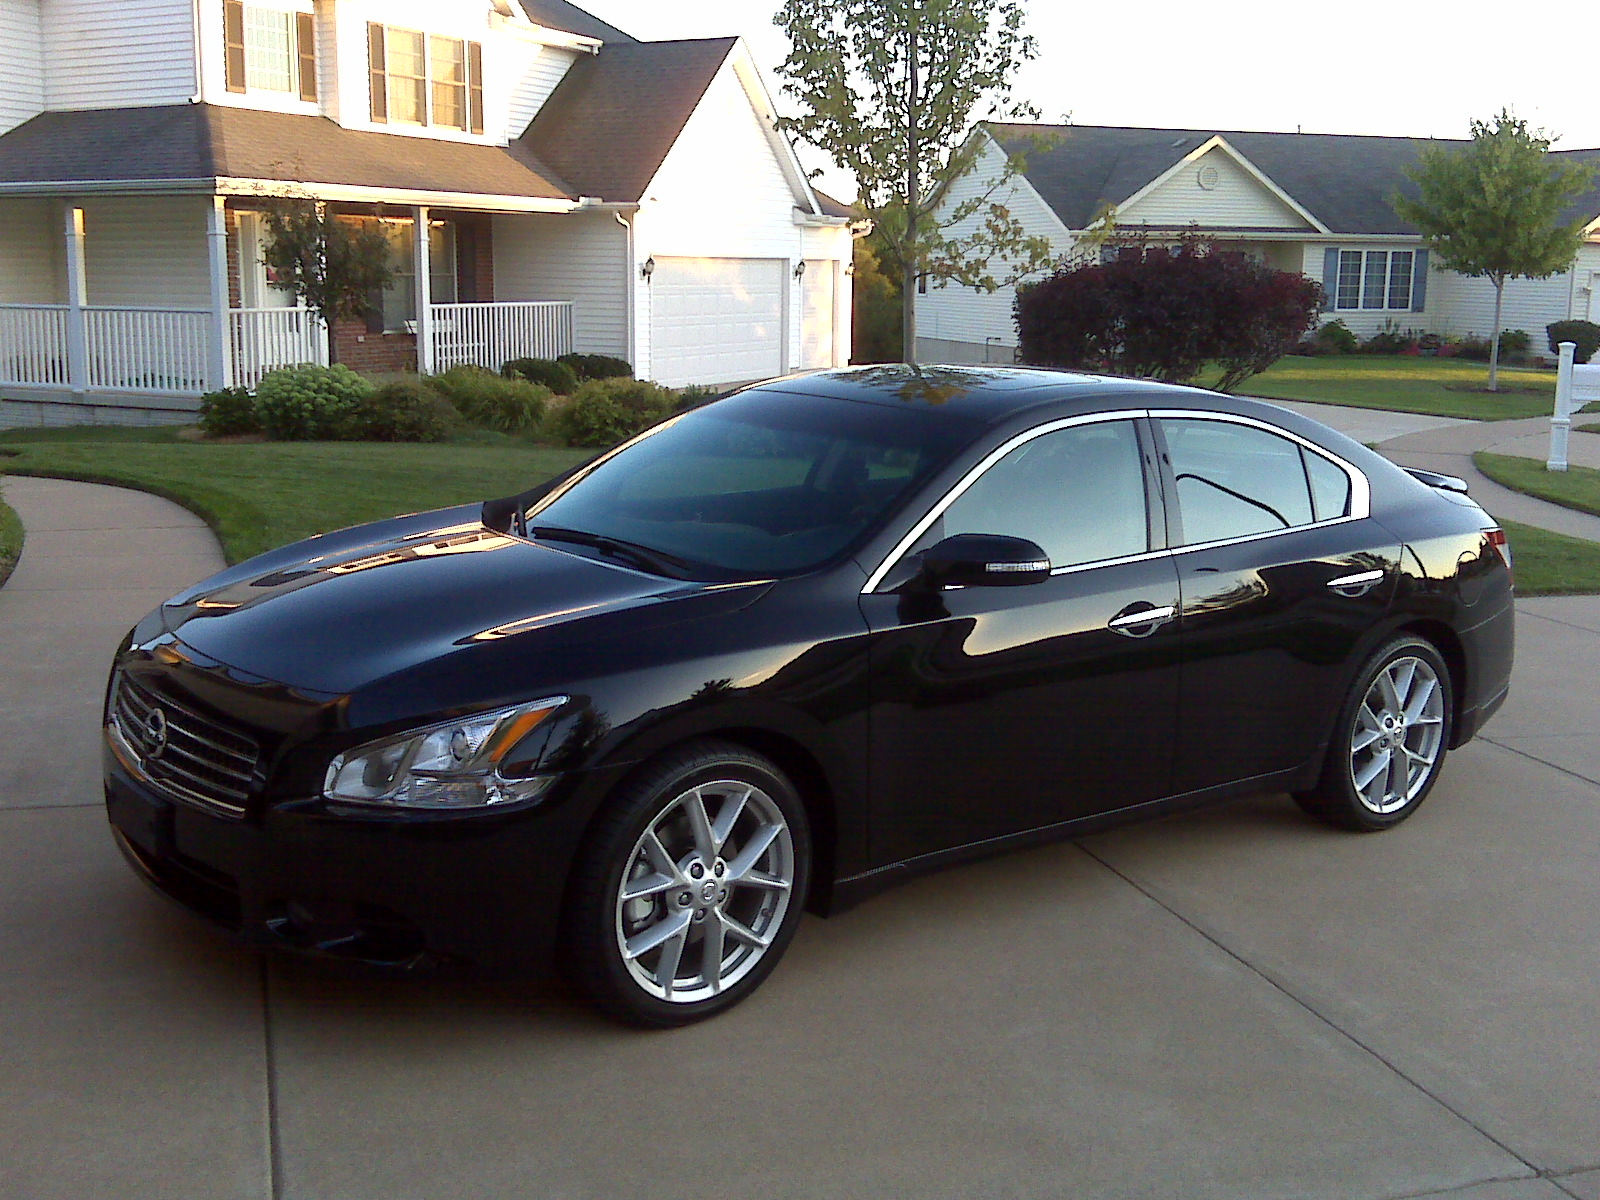 Nissan Maxima Review And Photos